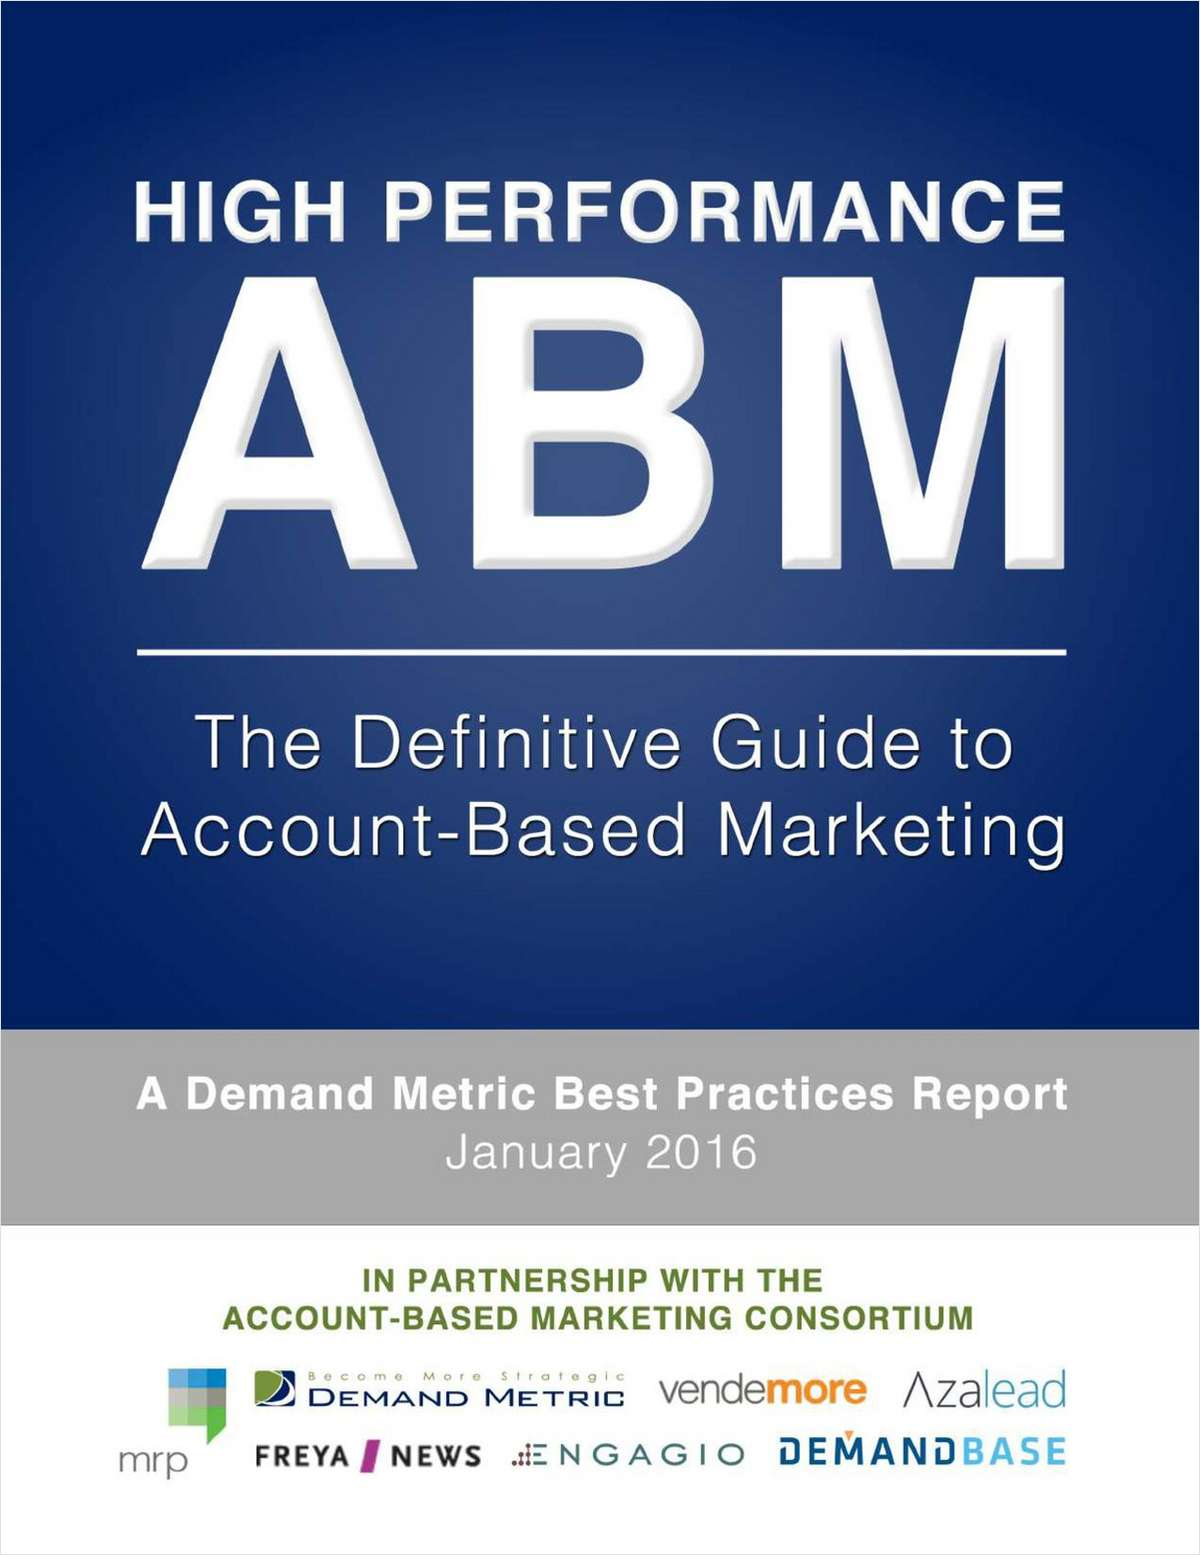 High Performance ABM: The Definitive Guide to Account-Based Marketing